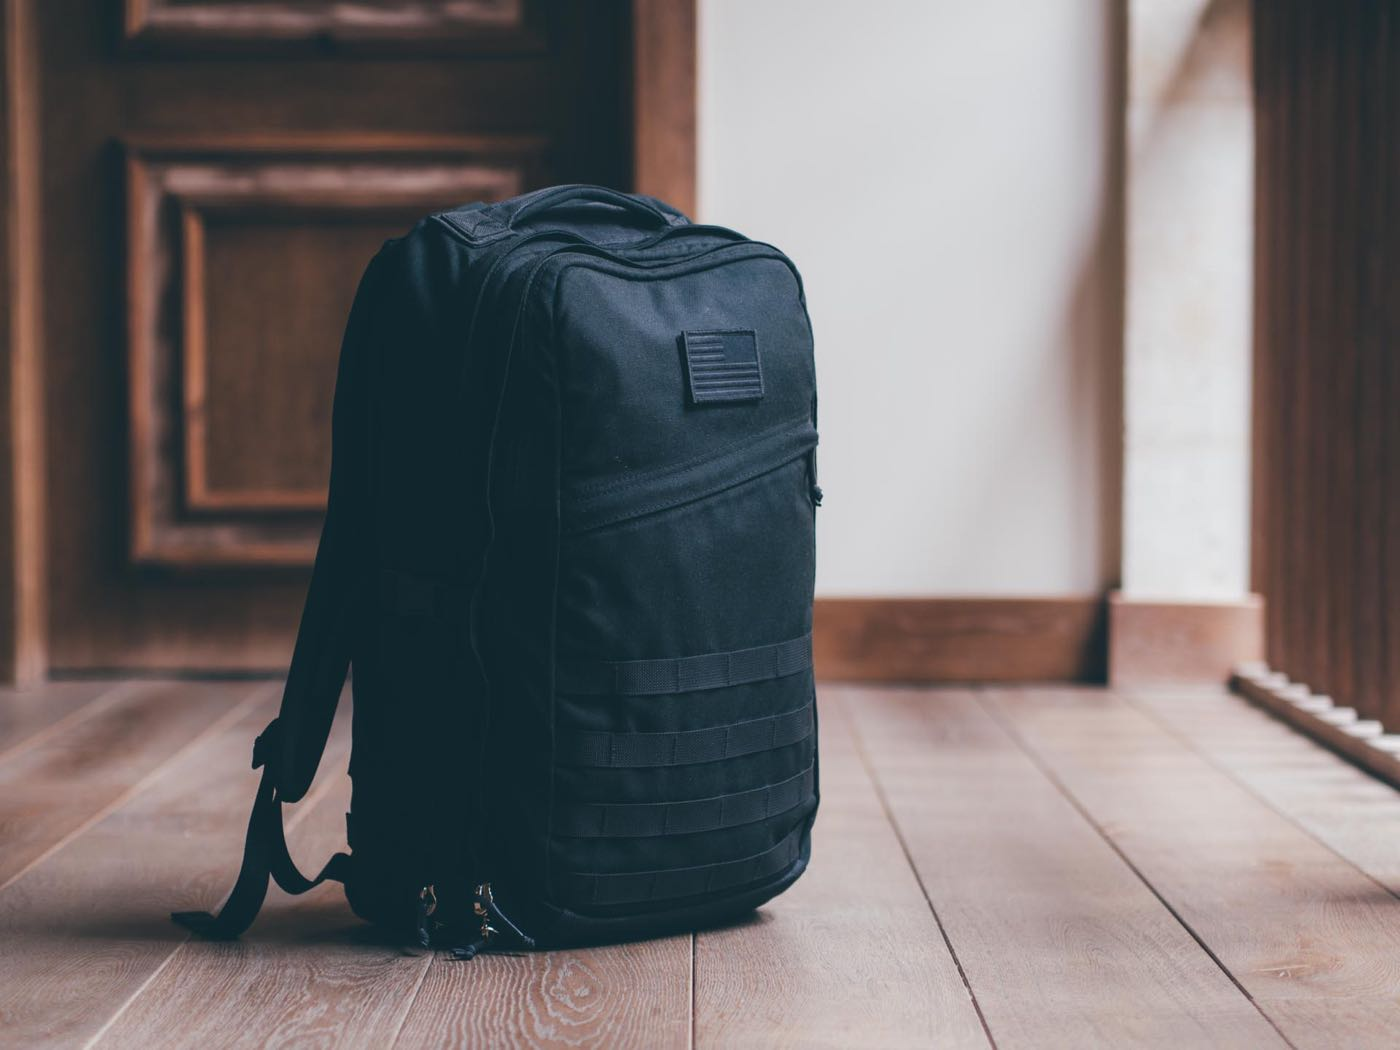 The GORUCK GR2 travel bag. ($355 for 34L or $395 for 40L)